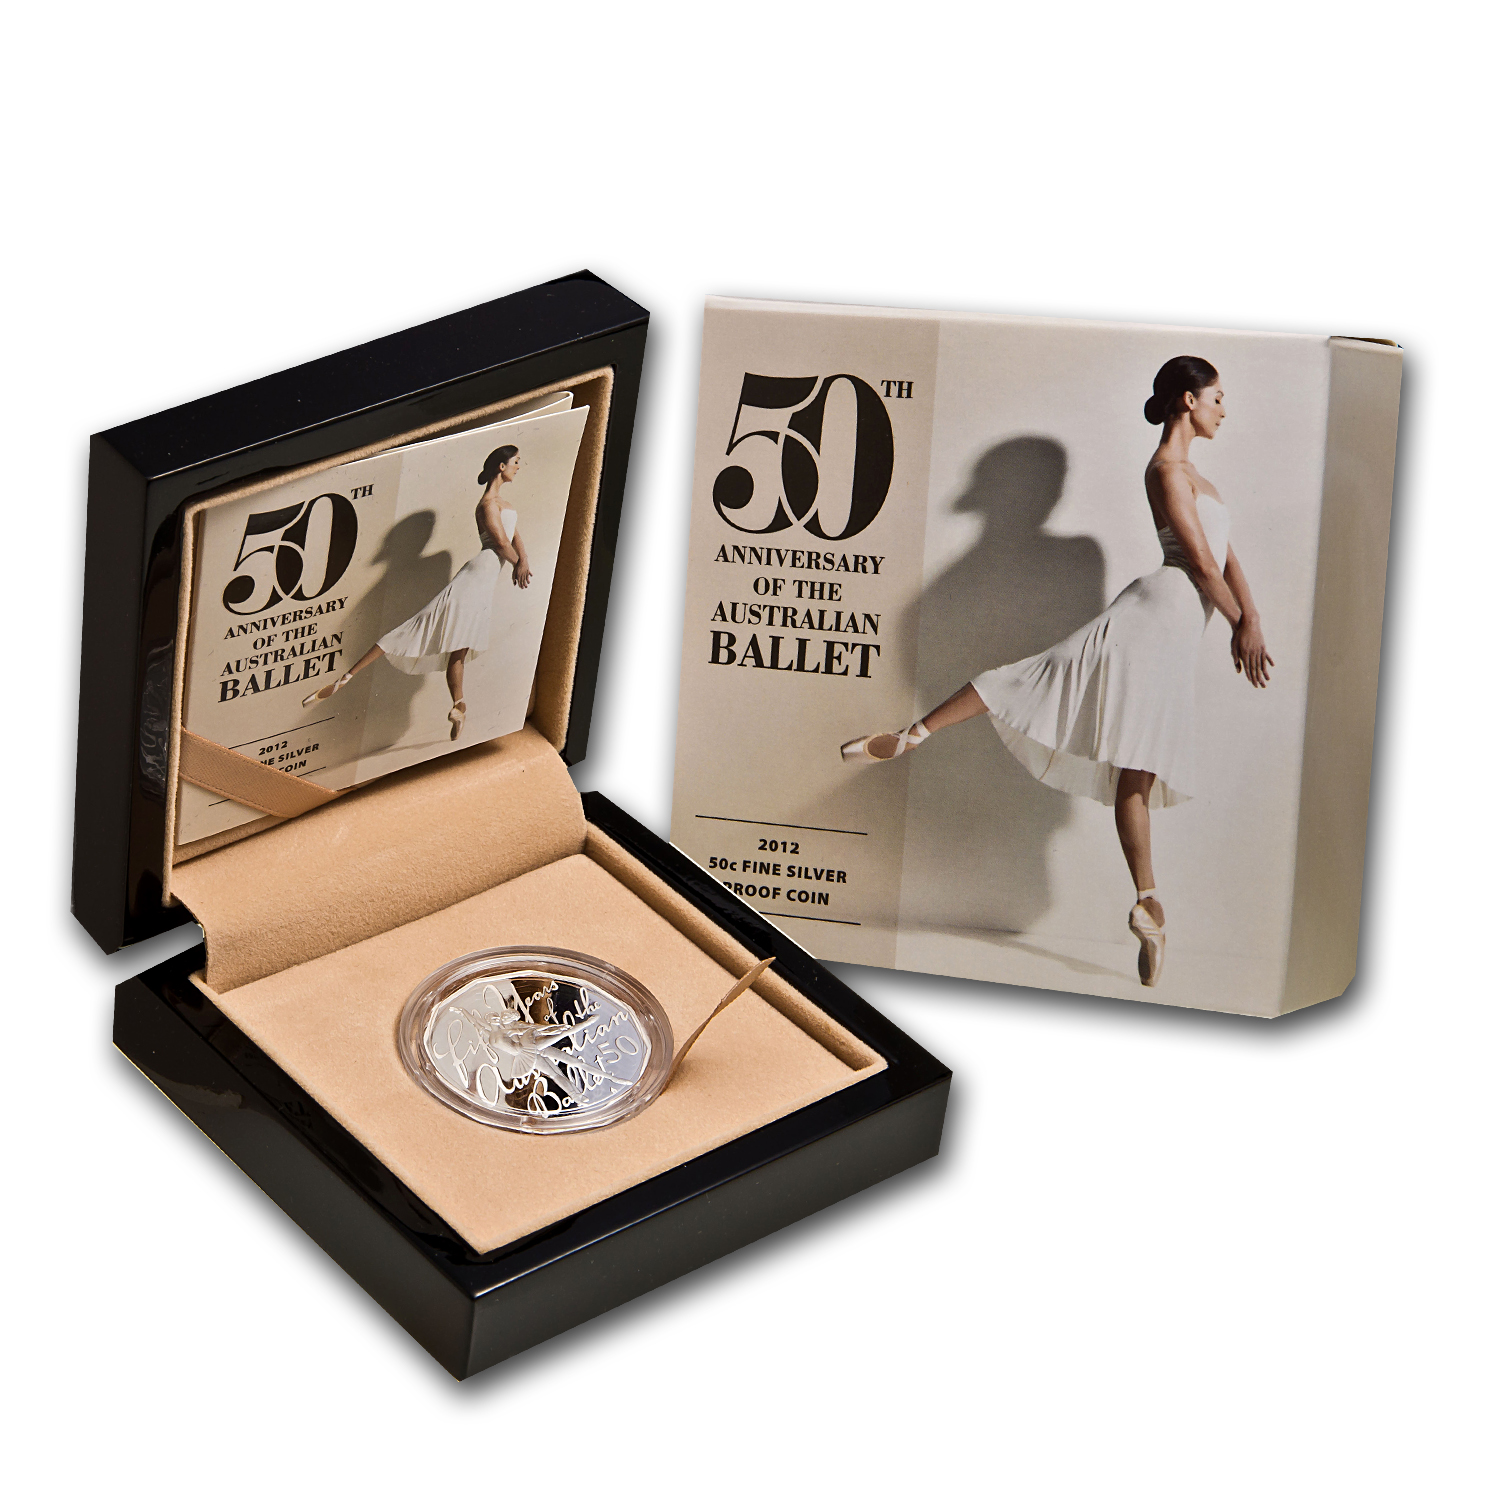 Royal Australian Mint 2012 50th Anniversary Ballet Silver Proof